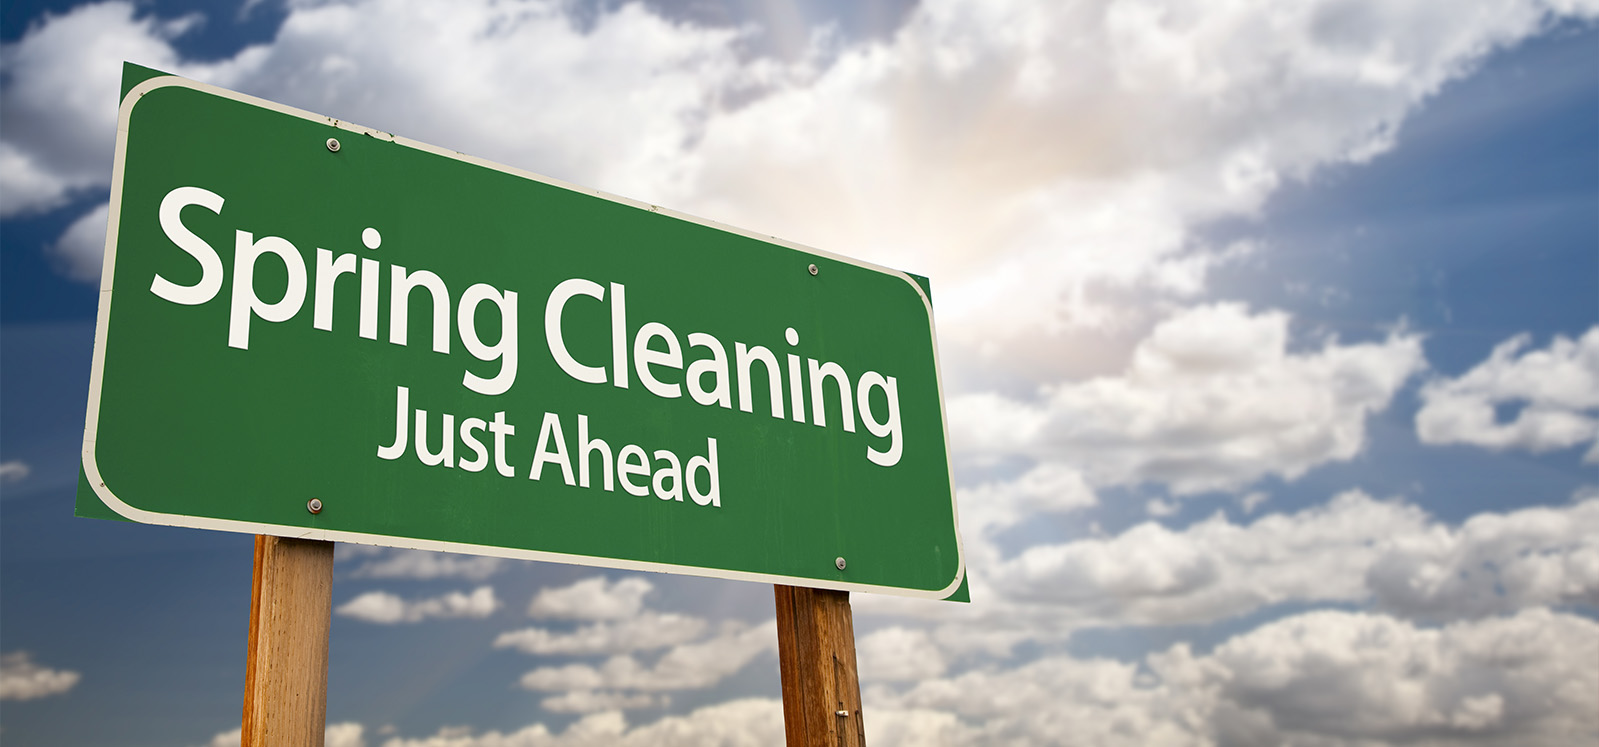 Spring Cleaning Tips: Time to Declutter Your Home